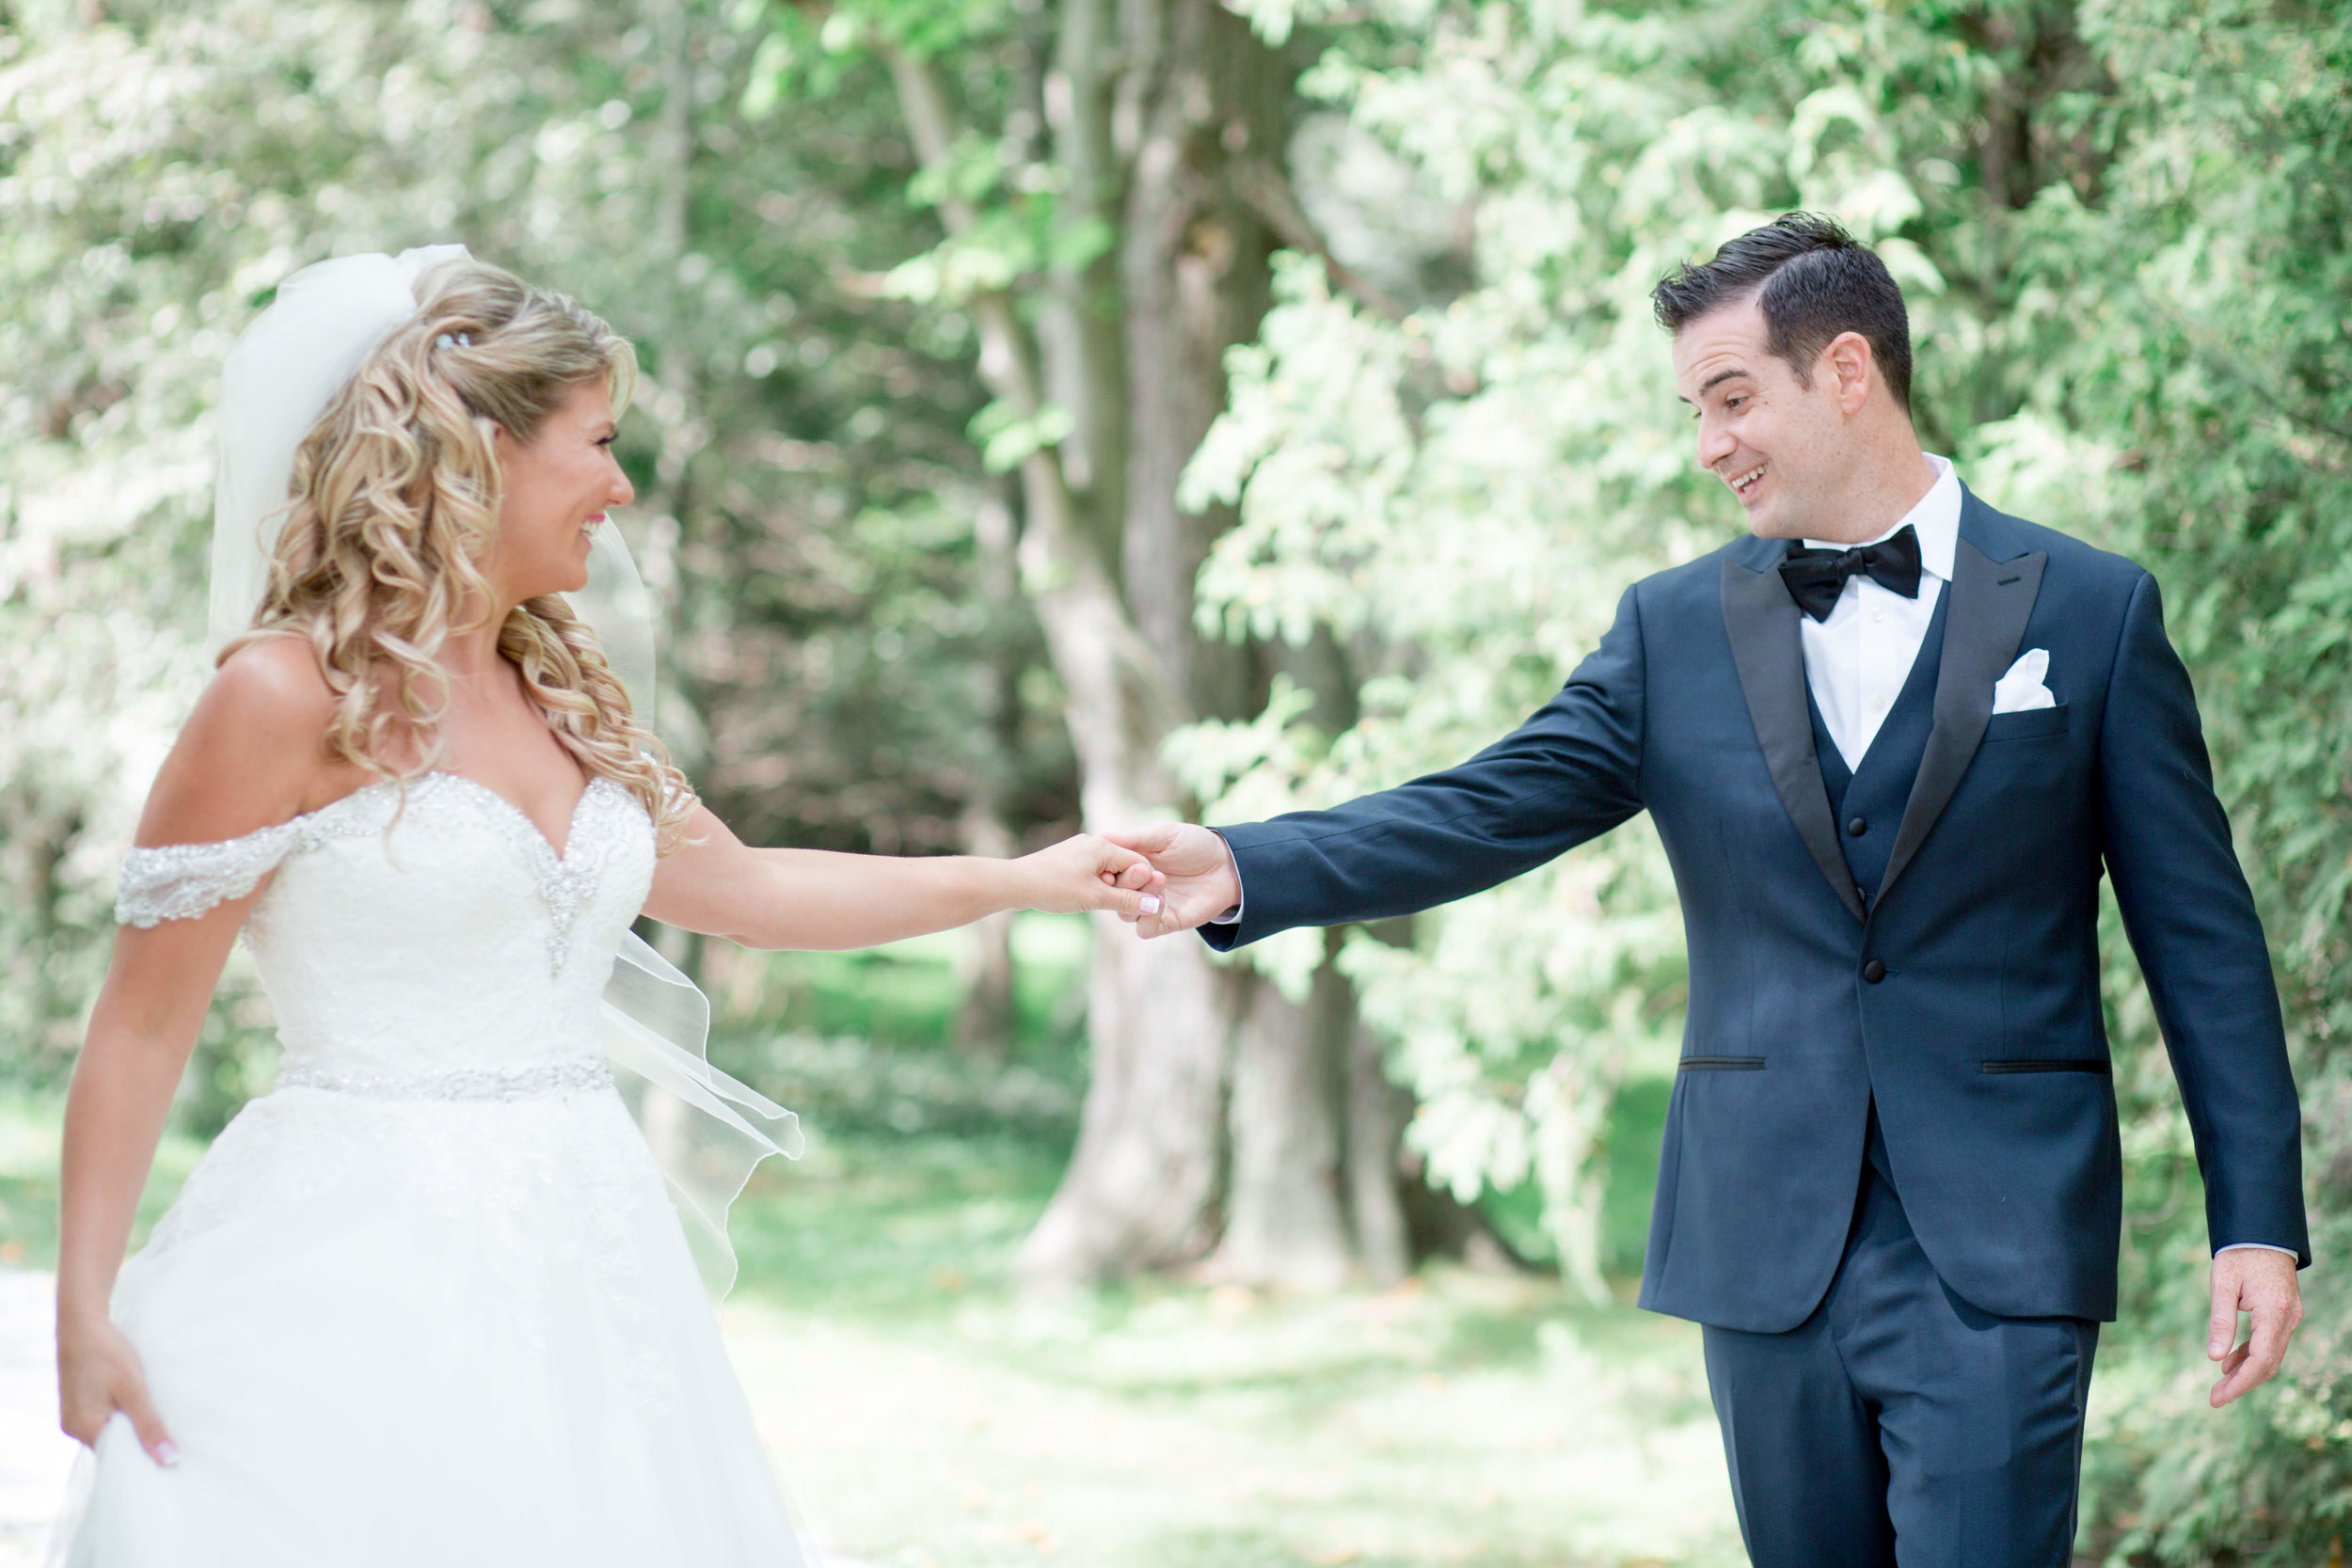 Ashley___Zac___Daniel_Ricci_Weddings___High_Res._Finals_91.jpg